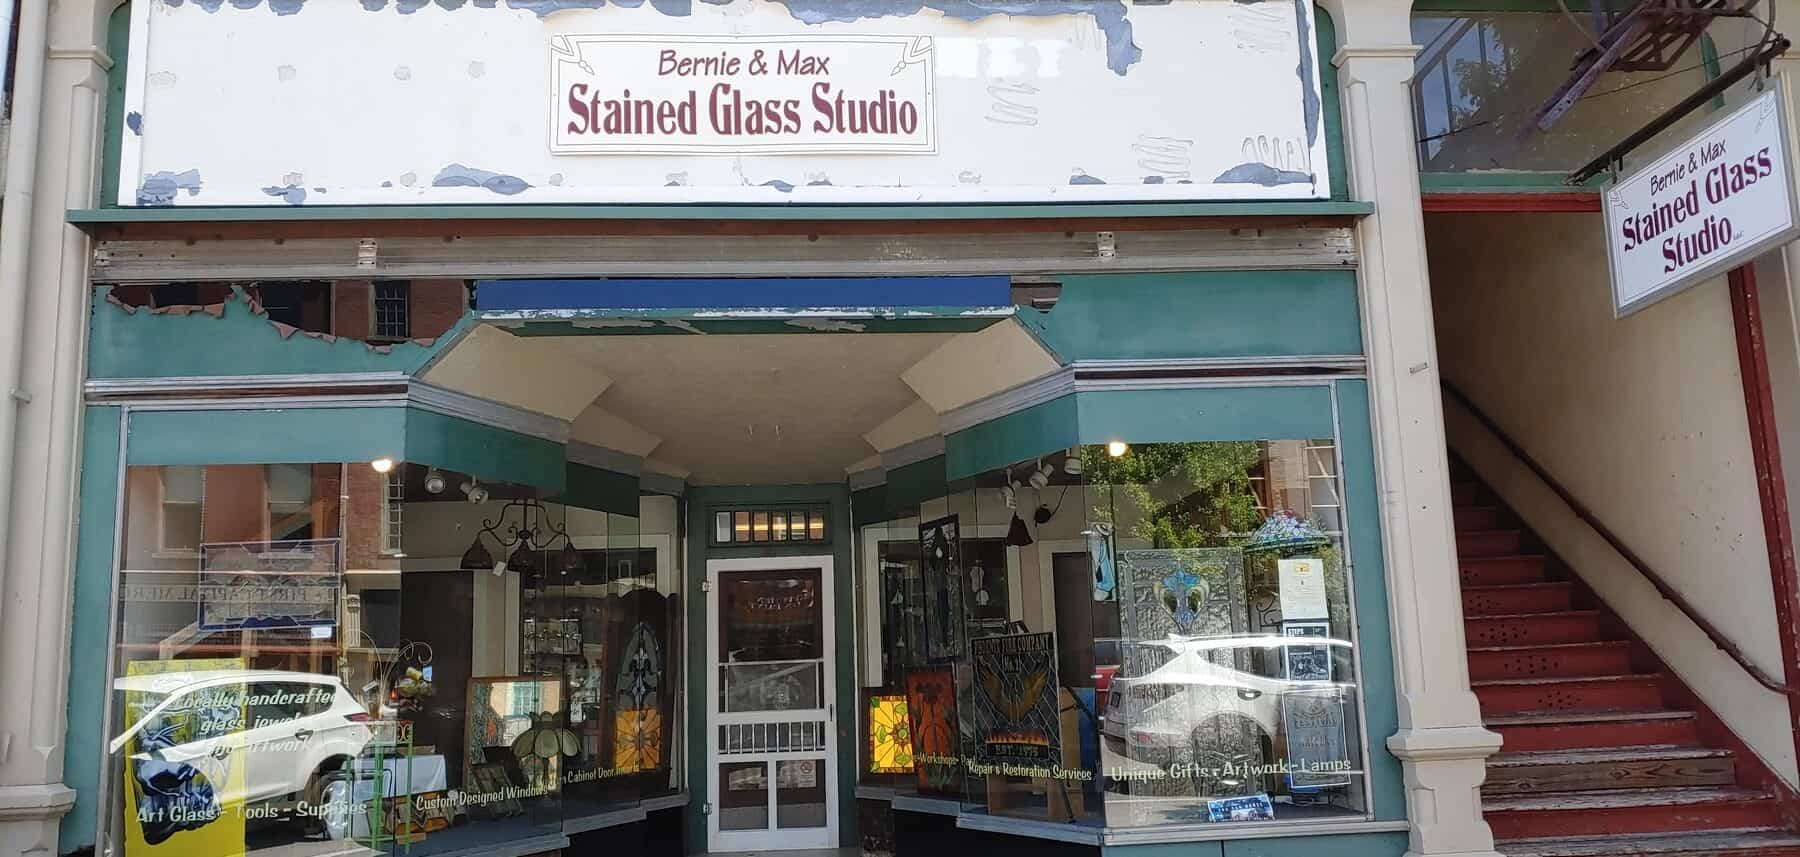 Bernie and Max Stained Glass Studio in Chillicothe, ohio